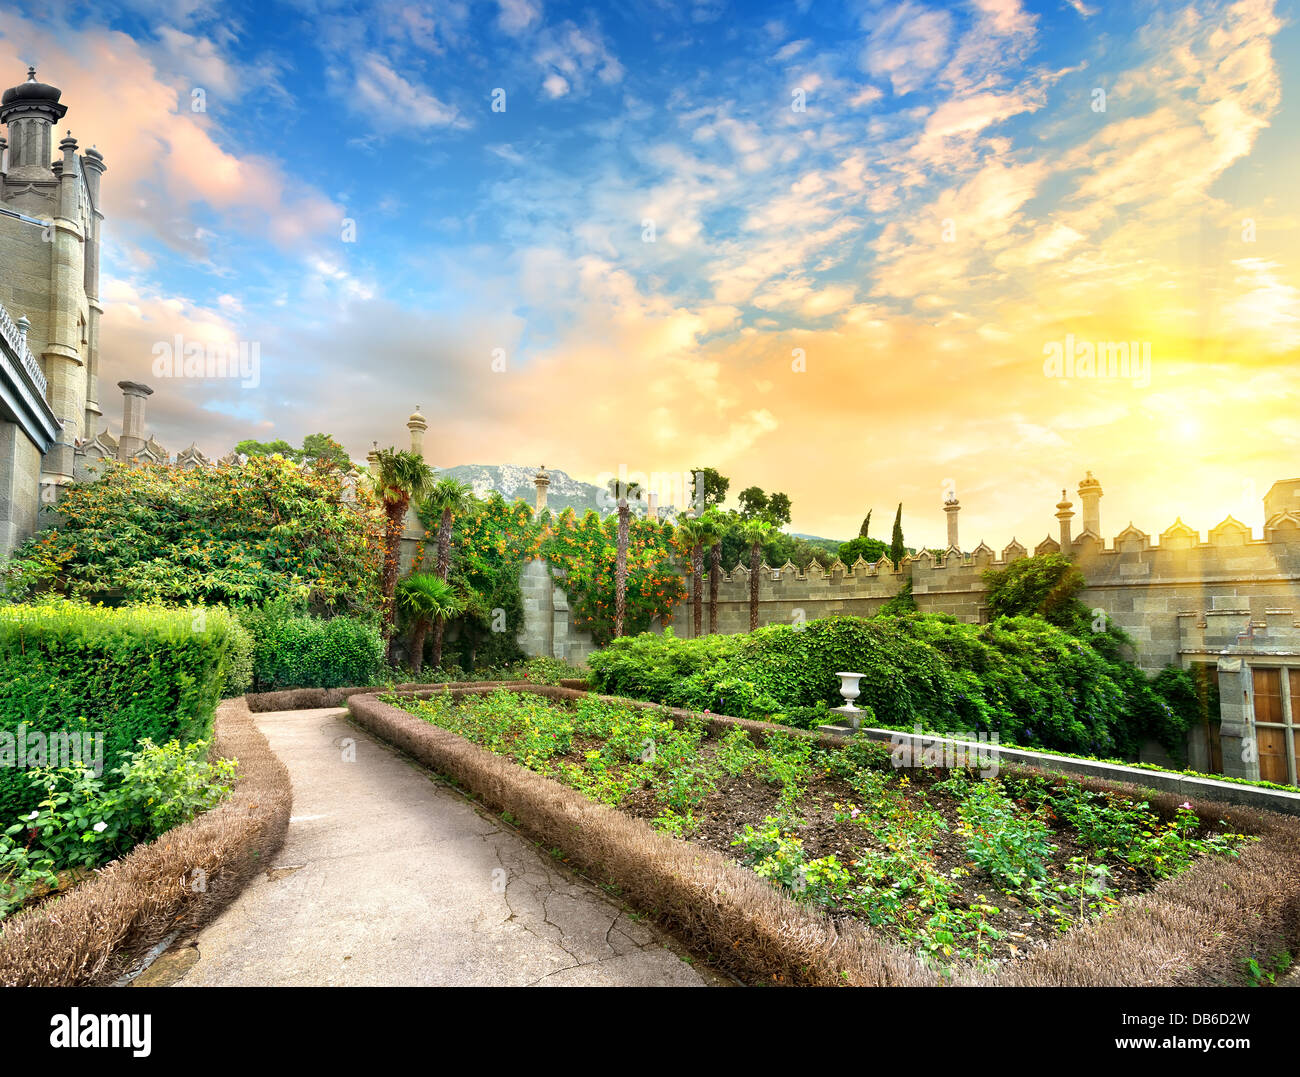 Vorontsov garden in the town of Alupka, Crimea - Stock Image